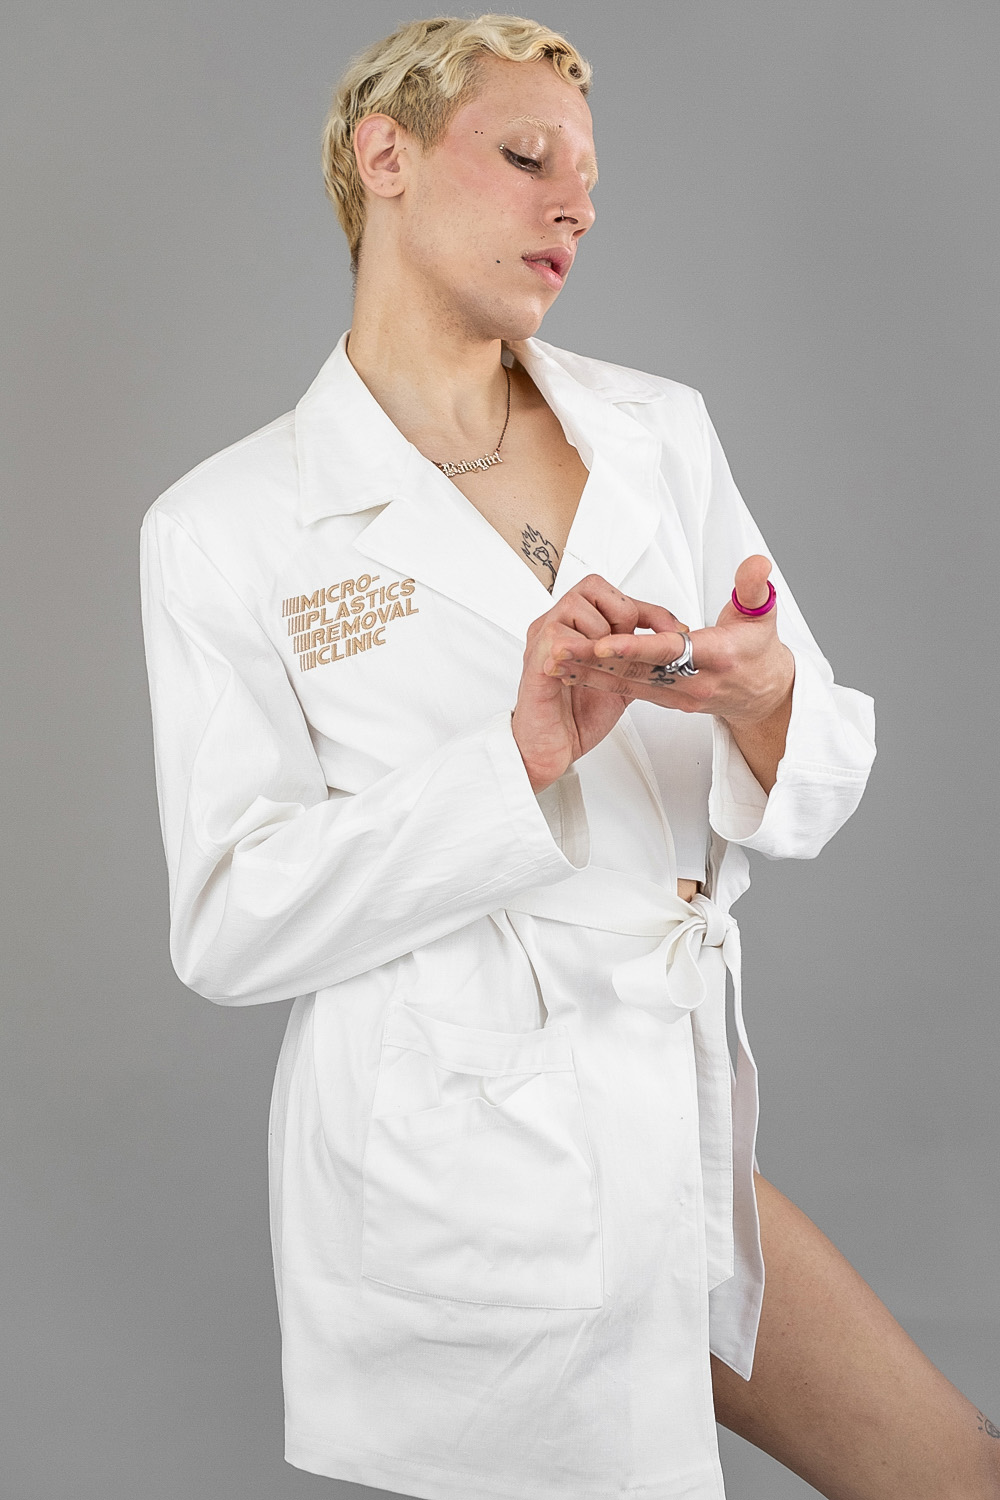 Removal Clinic Jacket 2